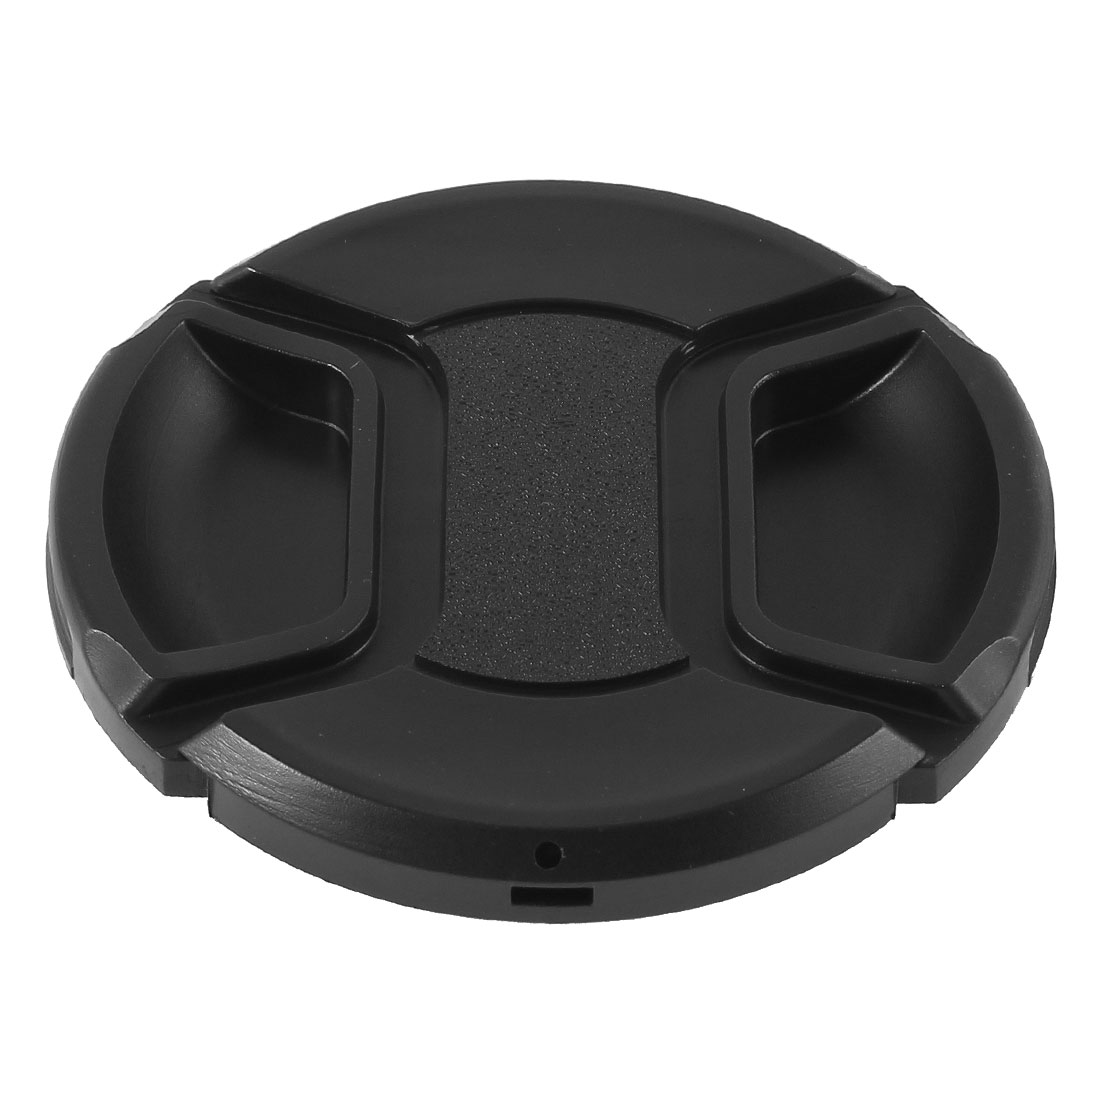 Univeral 67mm Center Pinch Front Lens Cap for DSLR Camera